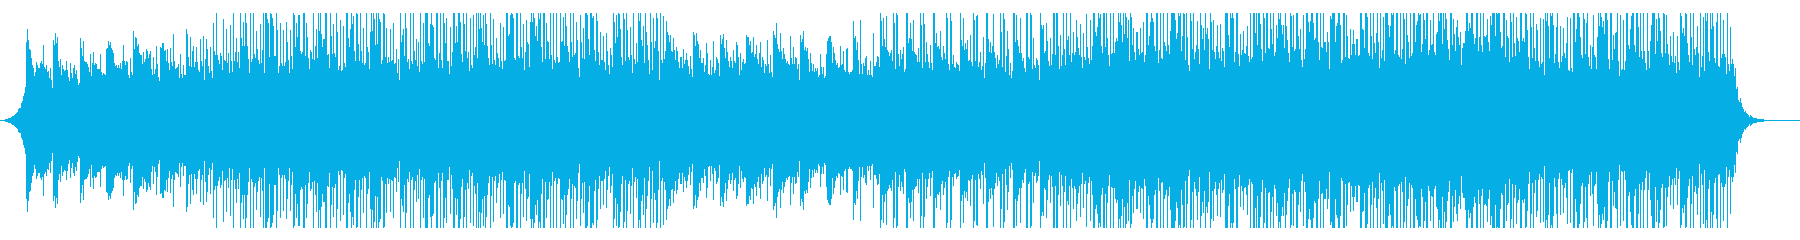 Electronic Technology's reproduced waveform